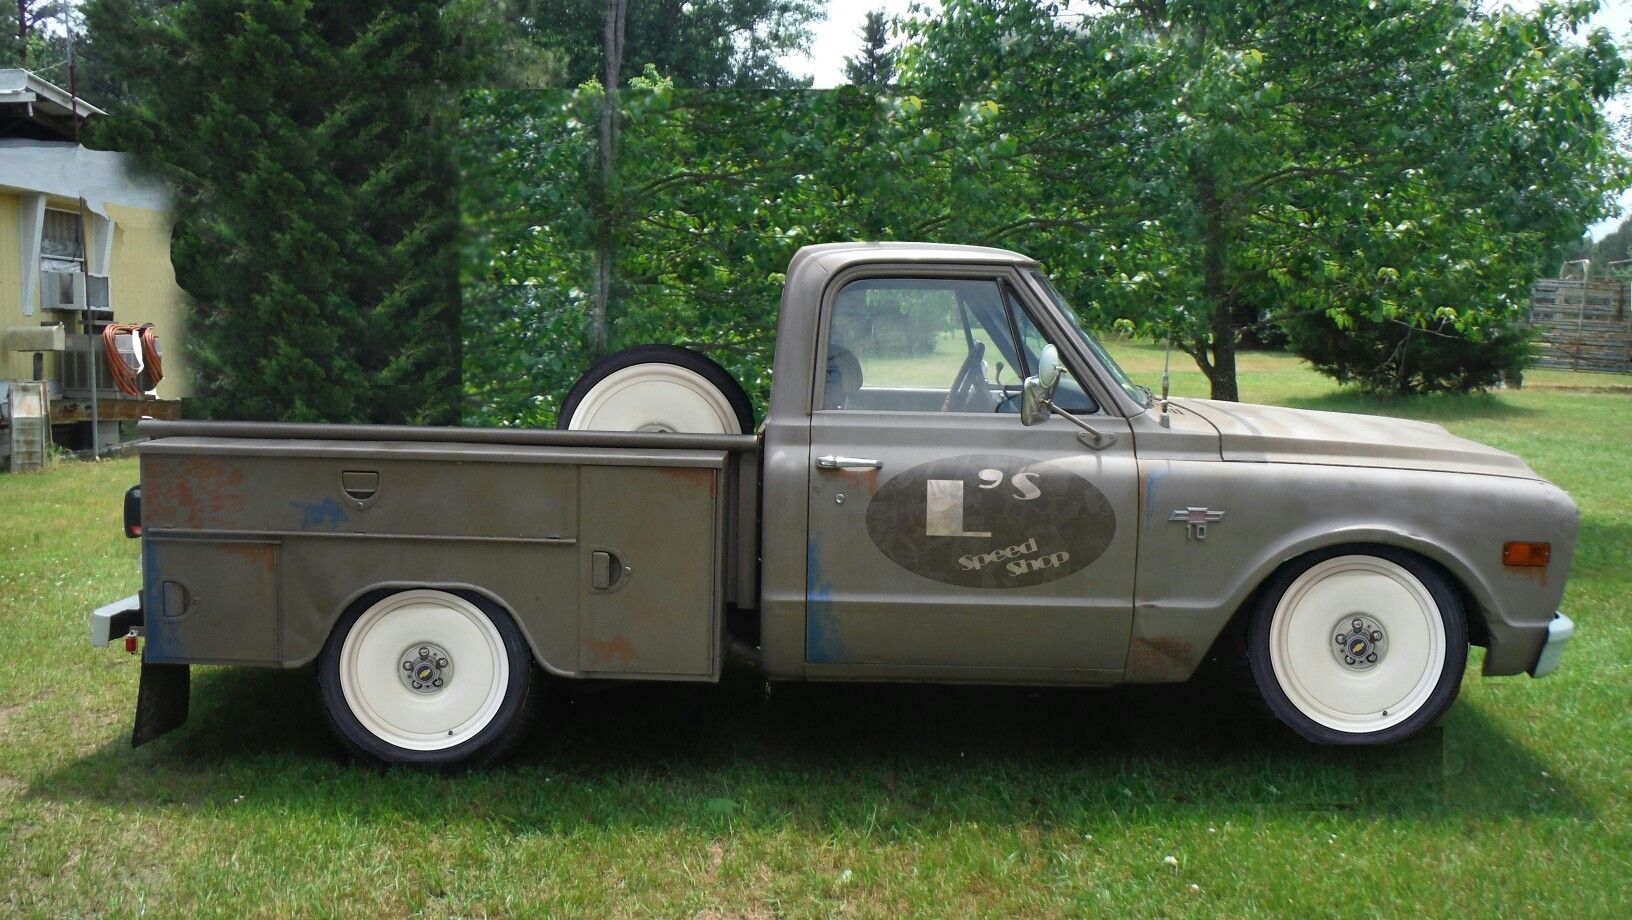 Photoshop Plan For My Truck 1968 C10 Utility Bed Work Truck